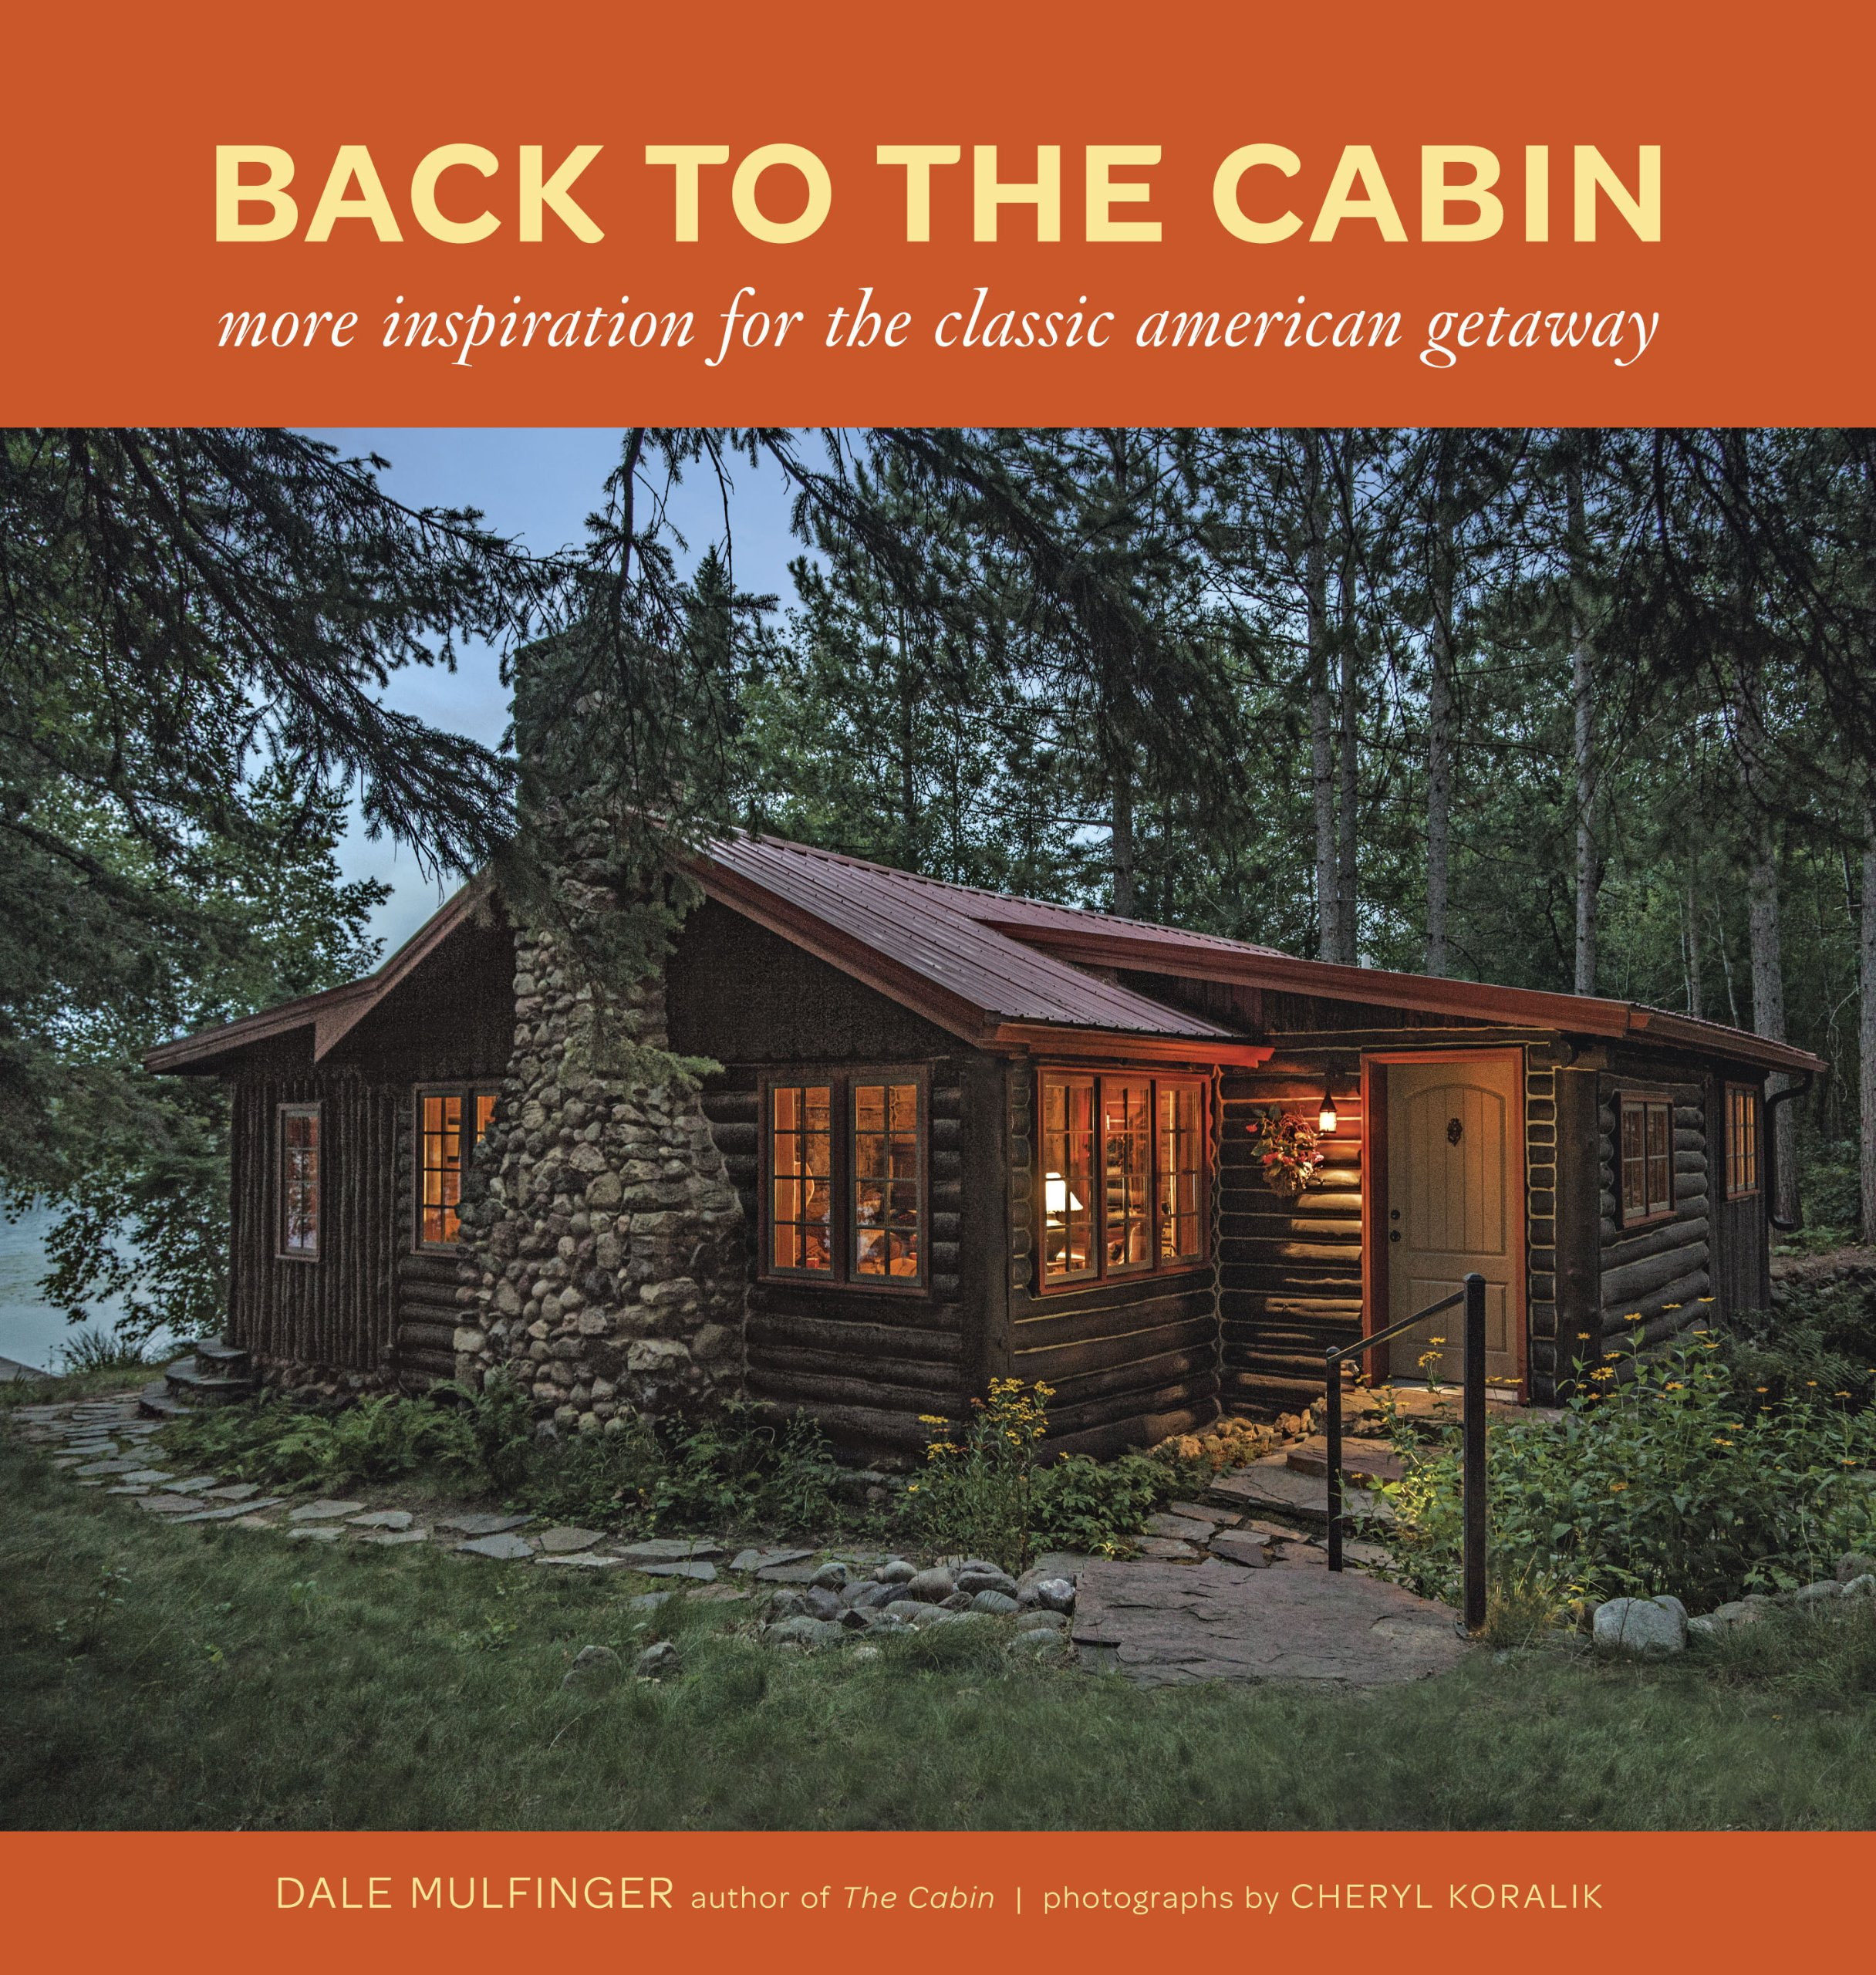 back dale cabin rentals amazon for cabins com getaway mulfinger inspiration american classic books dp more the to